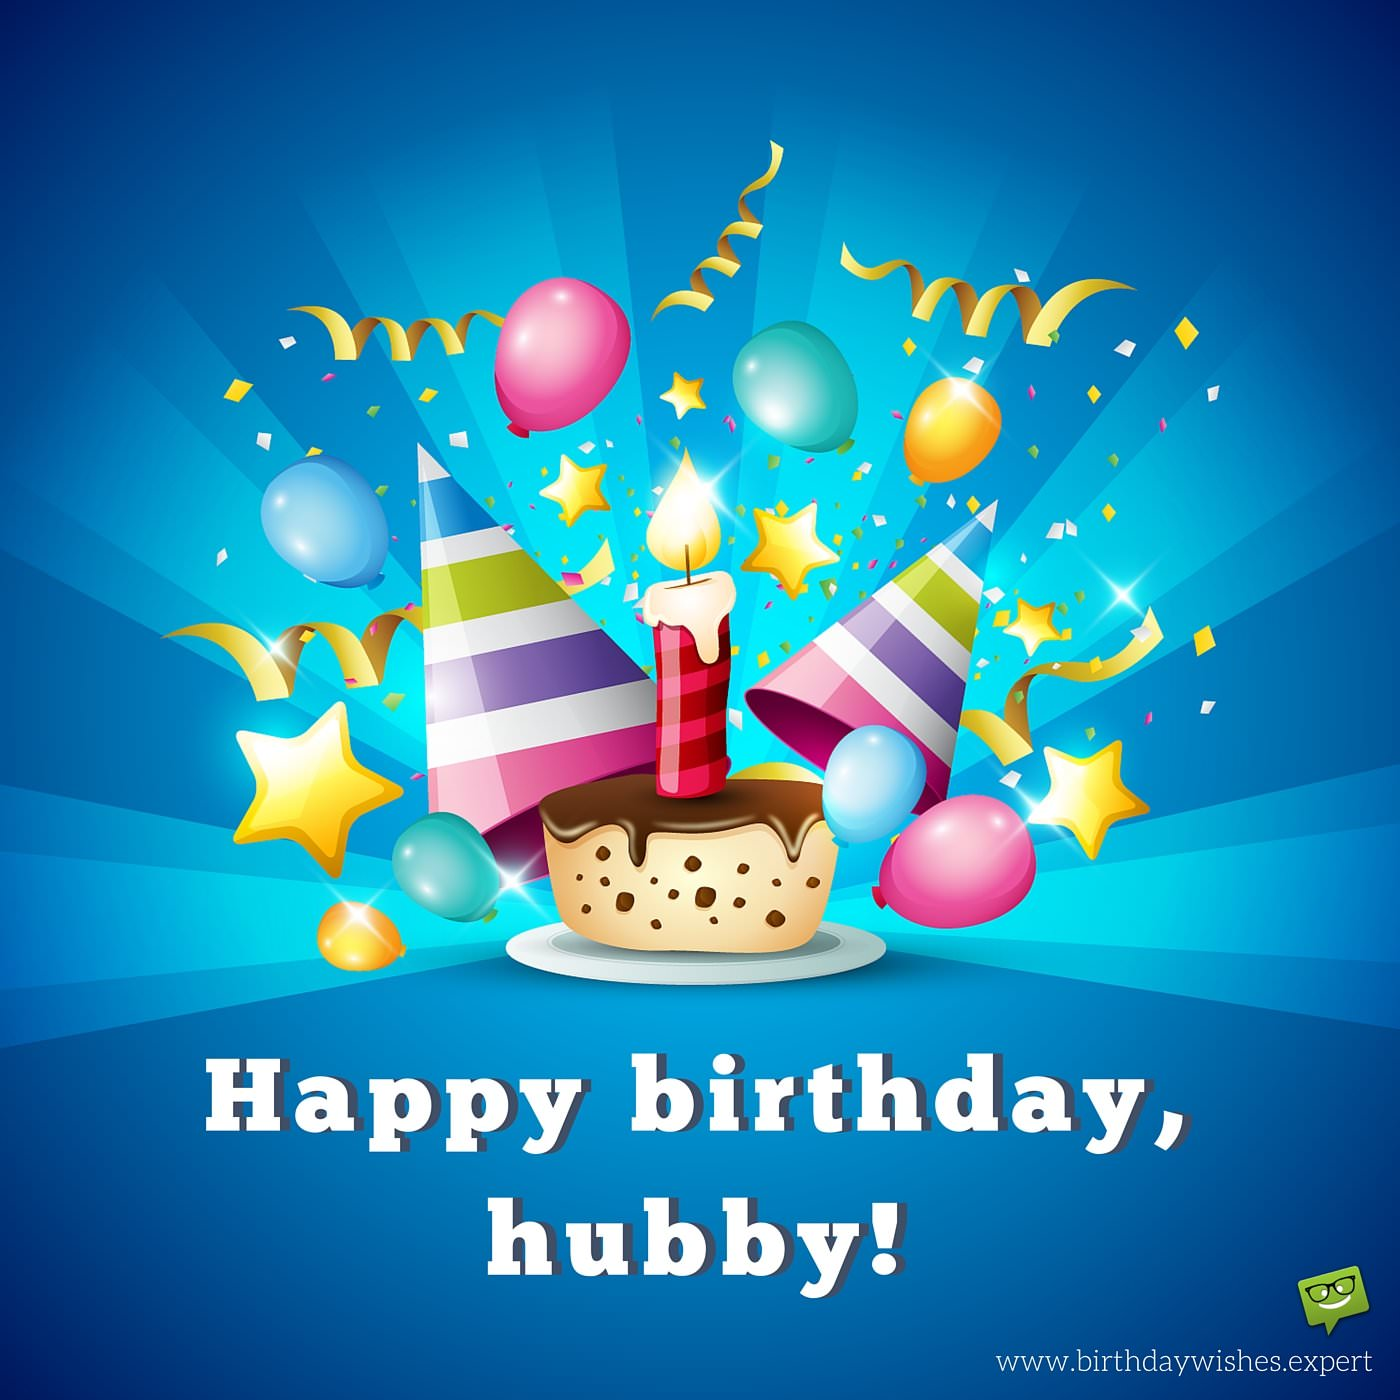 Image of: Gifs Happy Birthday Hubby Birthday Wishes Expert 50 Romantic Birthday Wishes For Your Husband